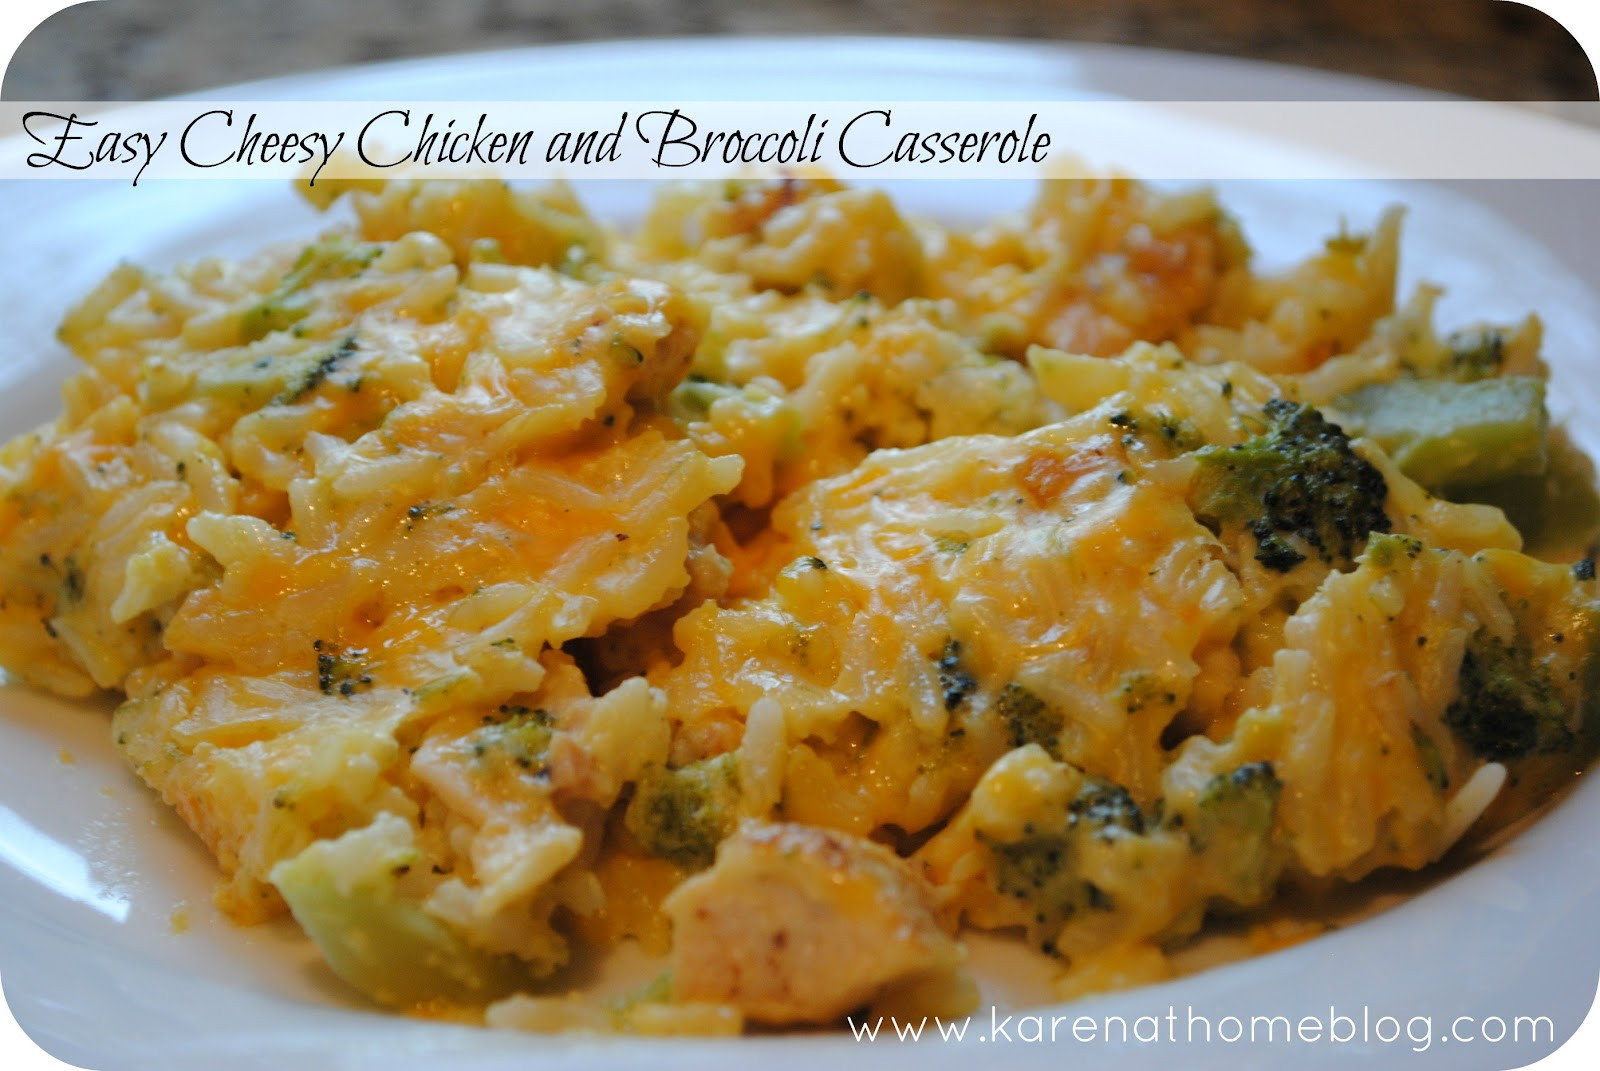 Chicken And Broccoli Bake  Karen Tucci Tips for the 40ish Easy Cheesy Chicken and